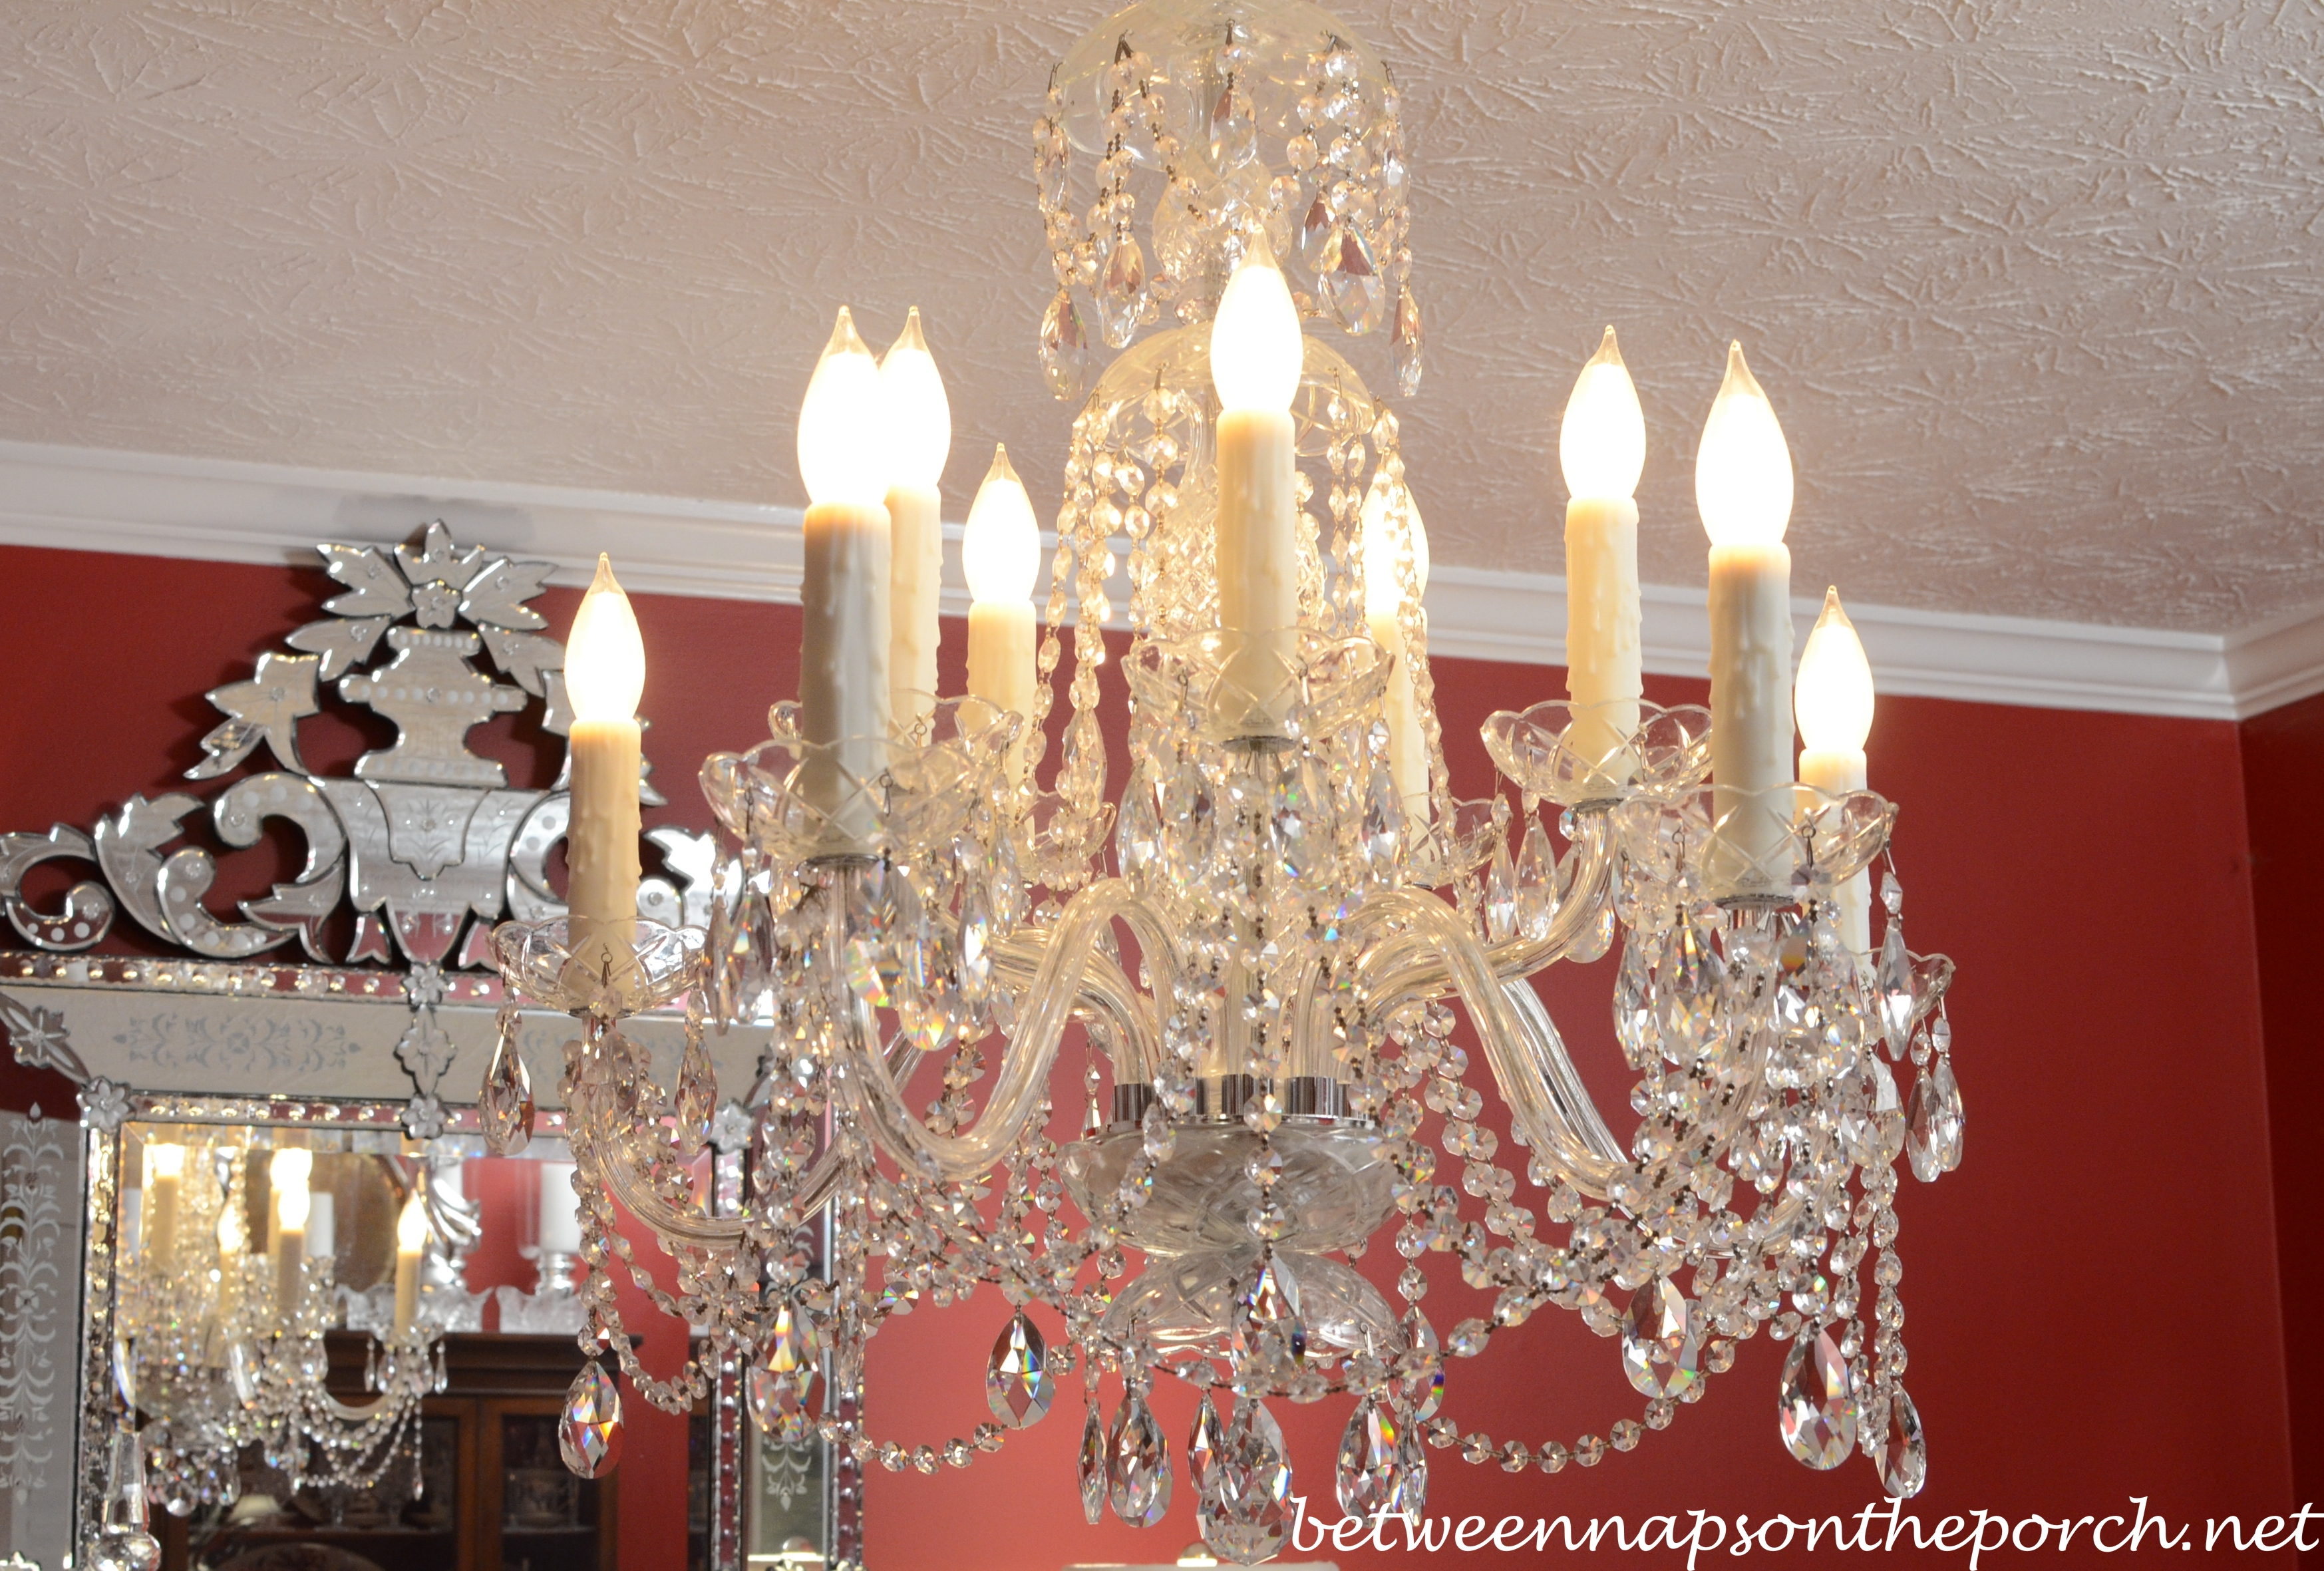 Transform an Ordinary Chandelier with Resin Candle Covers